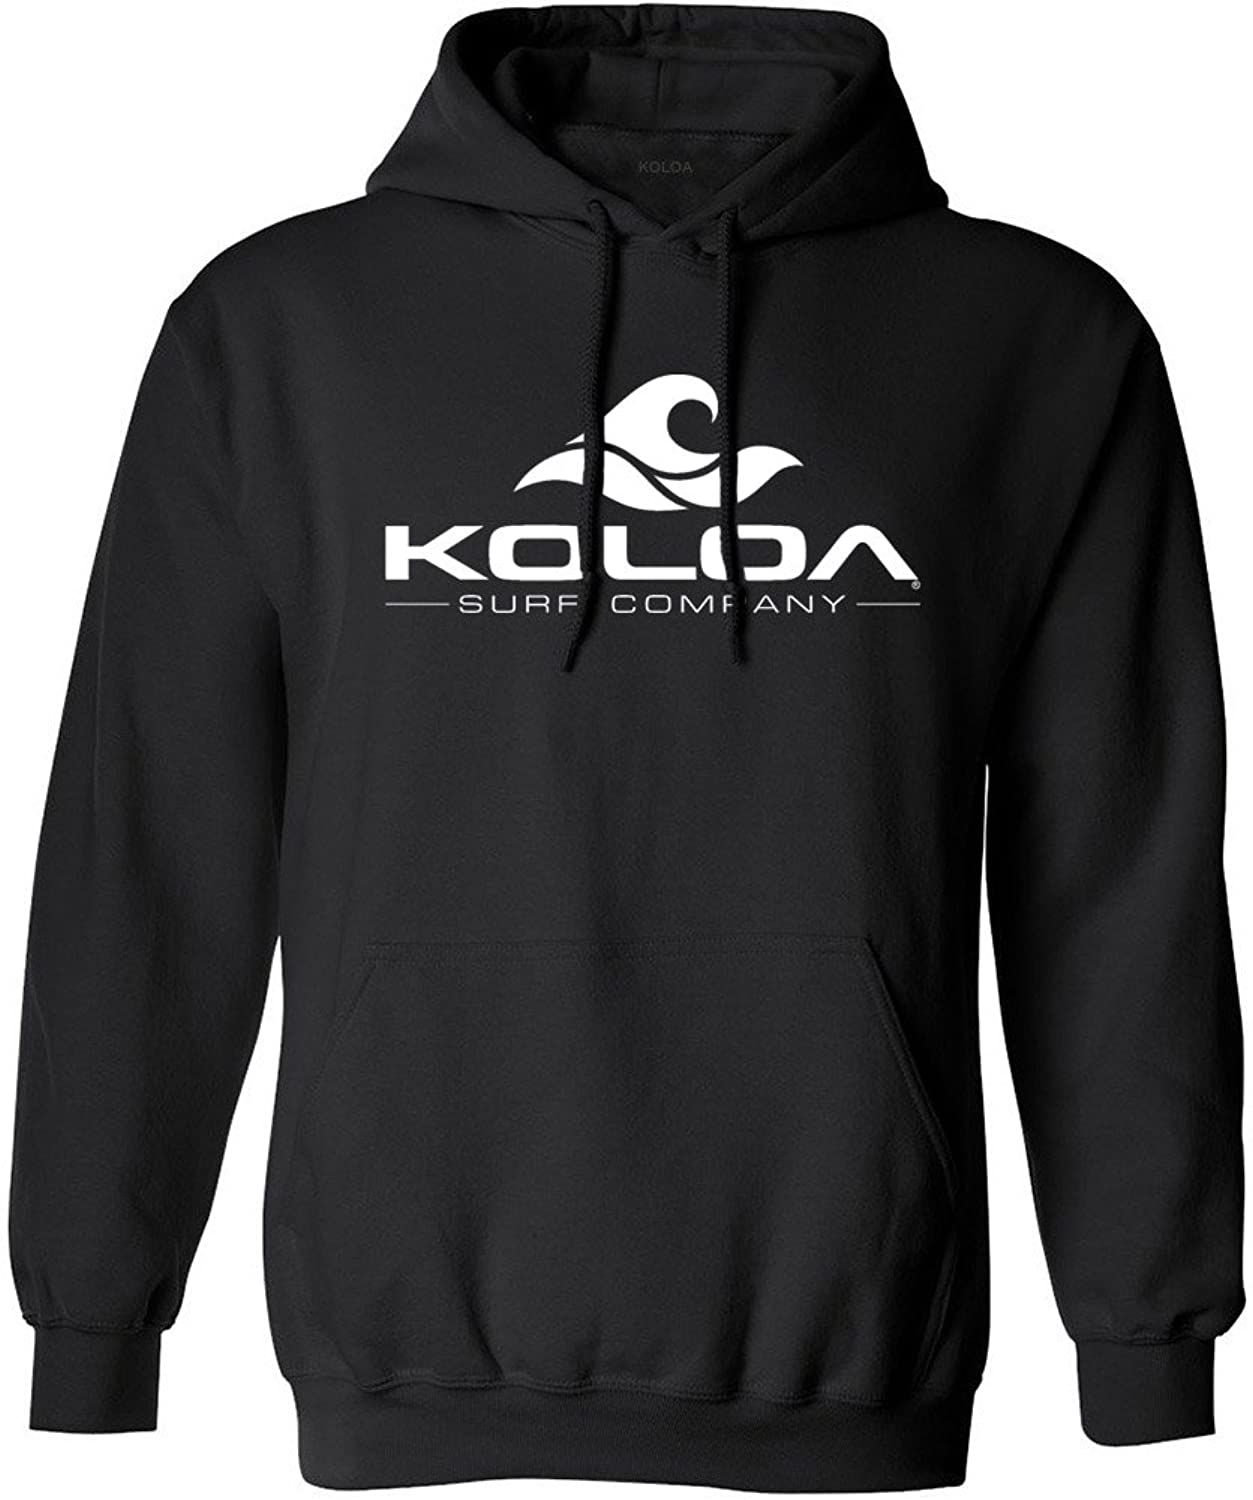 e841af6ae74 Koloa Surf Co. Logo Hoodies - Hooded Sweatshirts in 62 different Colors. In  Sizes S-5XL.Koloa Surf Logo Hoodies - Hooded Sweatshirts. In Sizes S-5XL